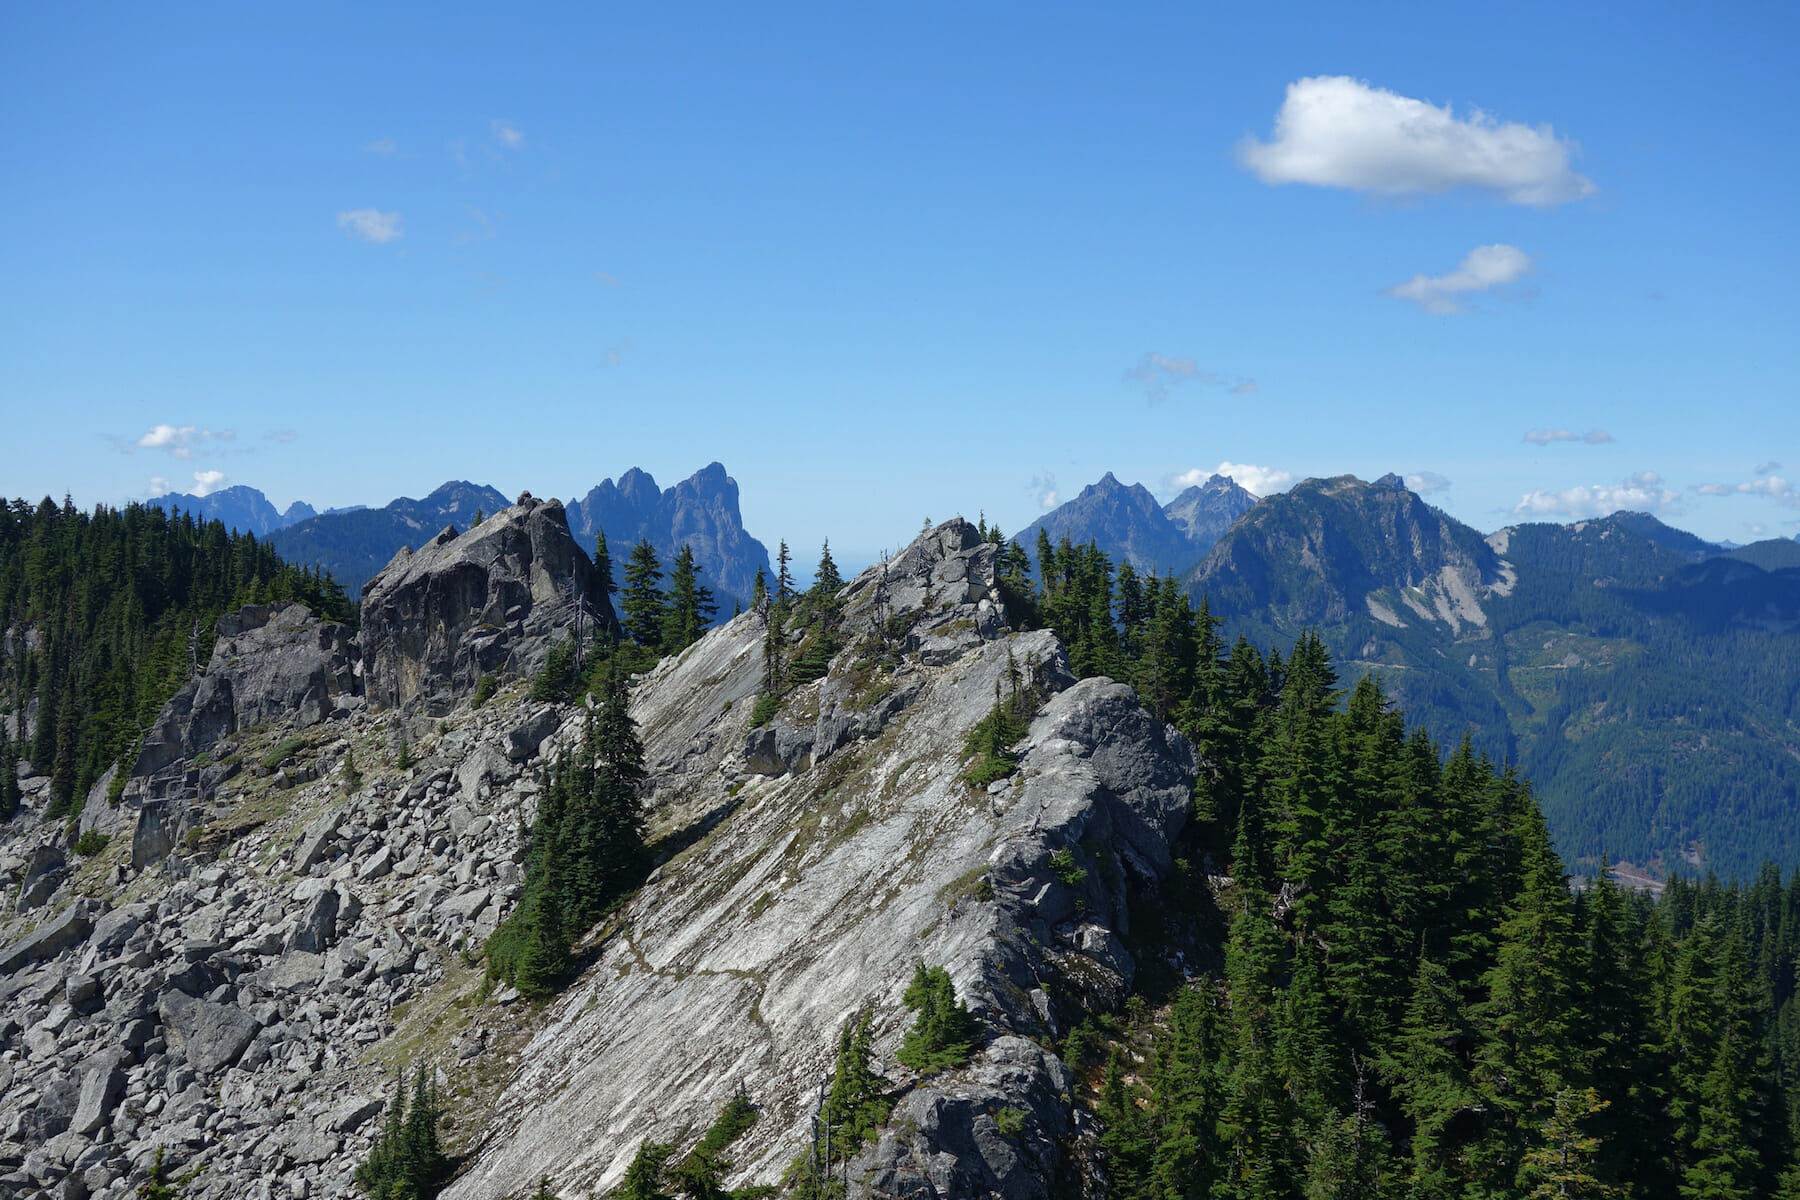 View from Beckler Peak